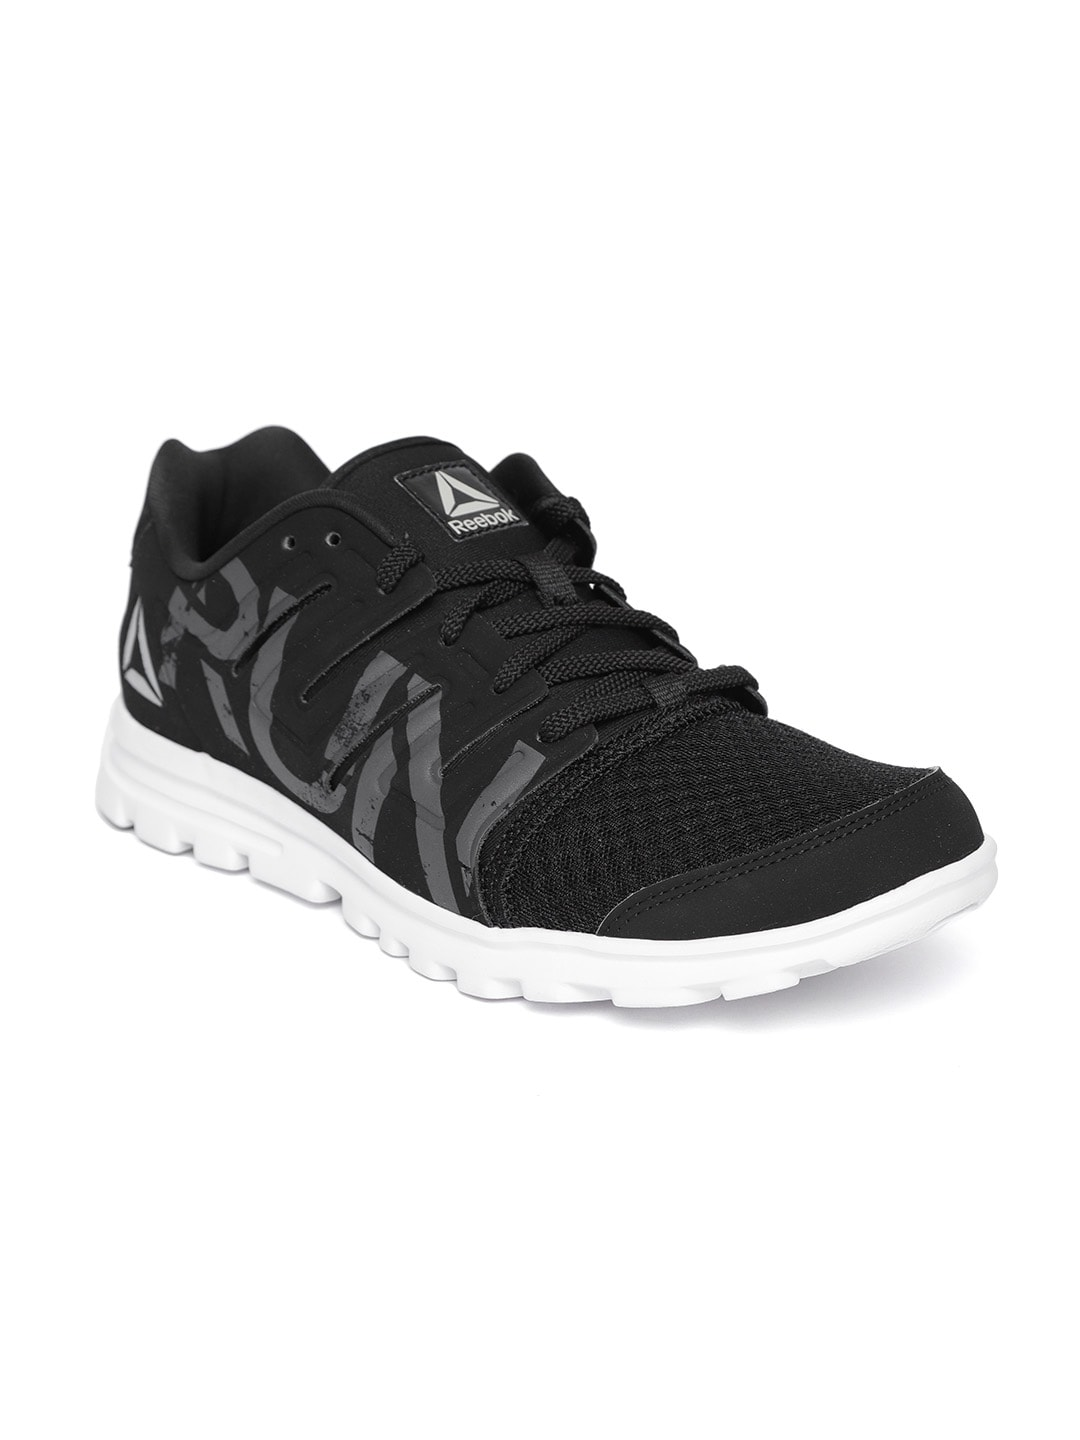 cd298fdc883 Men s Reebok Shoes - Buy Reebok Shoes for Men Online in India